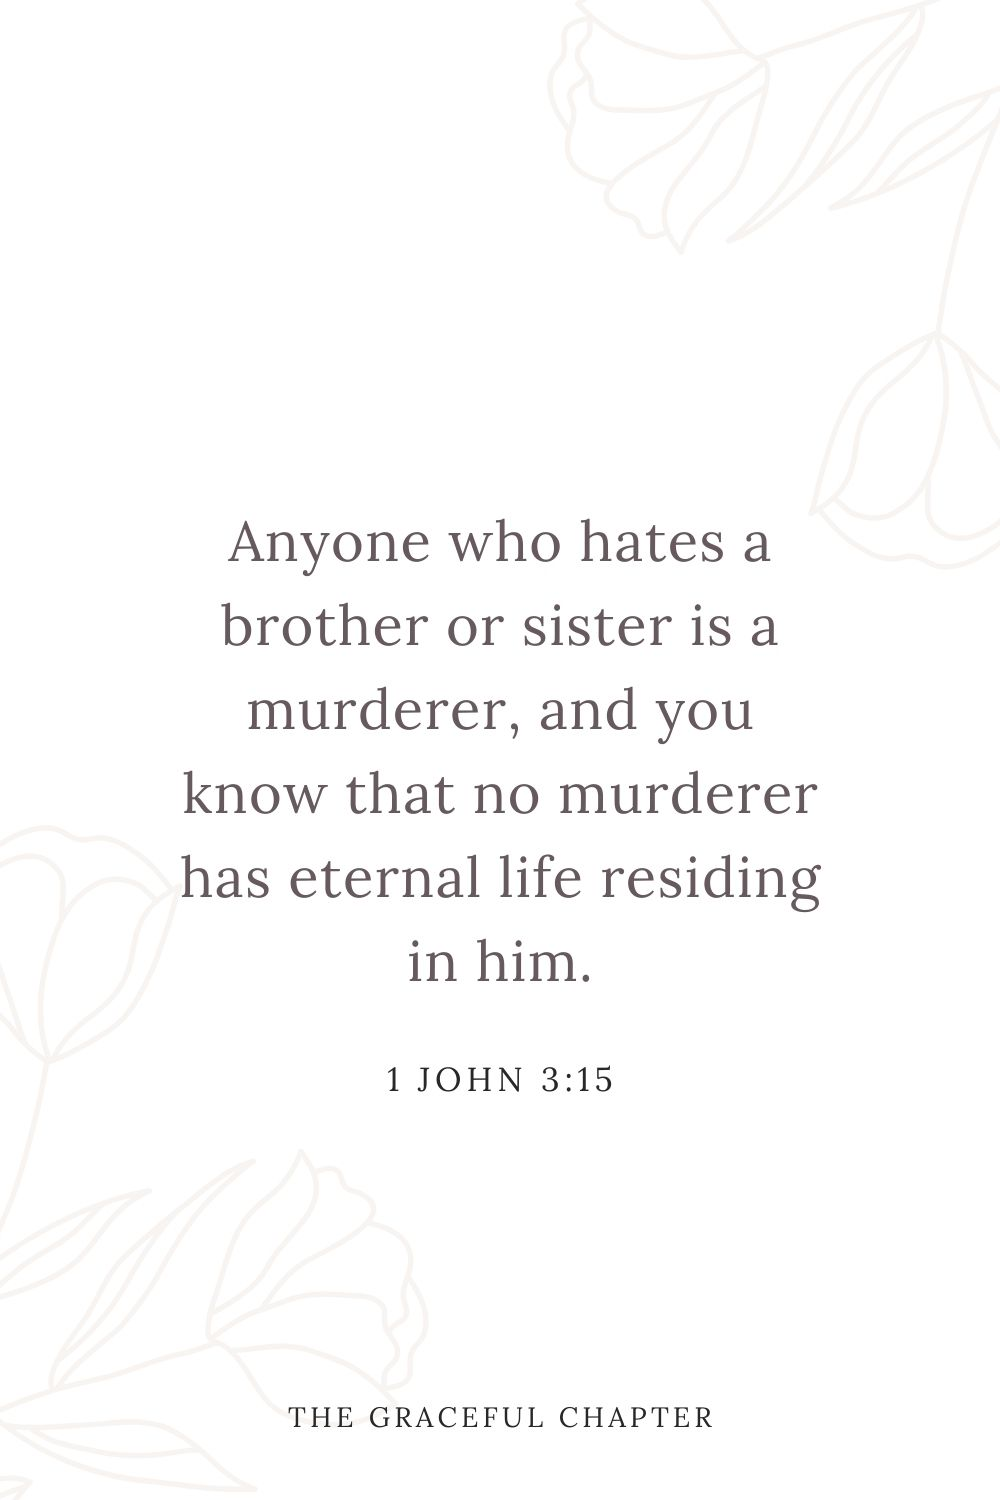 Anyone who hates a brother or sister is a murderer, and you know that no murderer has eternal life residing in him. 1 John 3:15